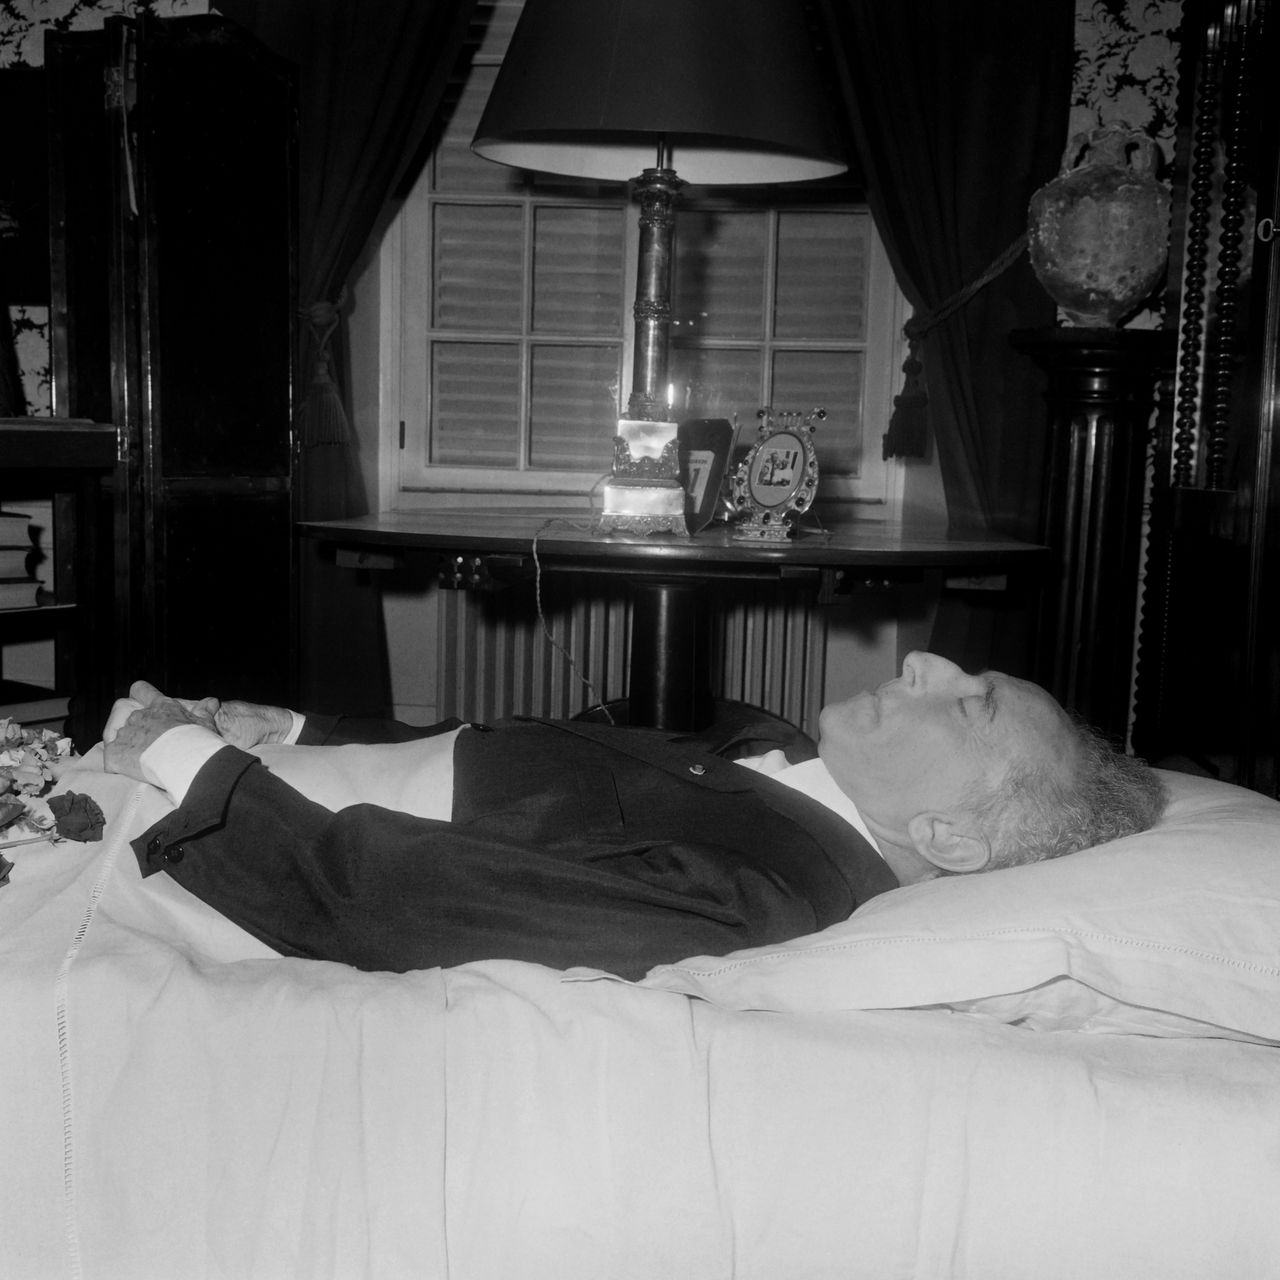 Picture released on October 12, 1963 of Jean Cocteau lying on his deathbed. Jean Cocteau (5 July 1889 – 11 October 1963) was a French poet, novelist, dramatist, writer, playwright, and director. Betwwen the two actor Jean-Claude Brialy.